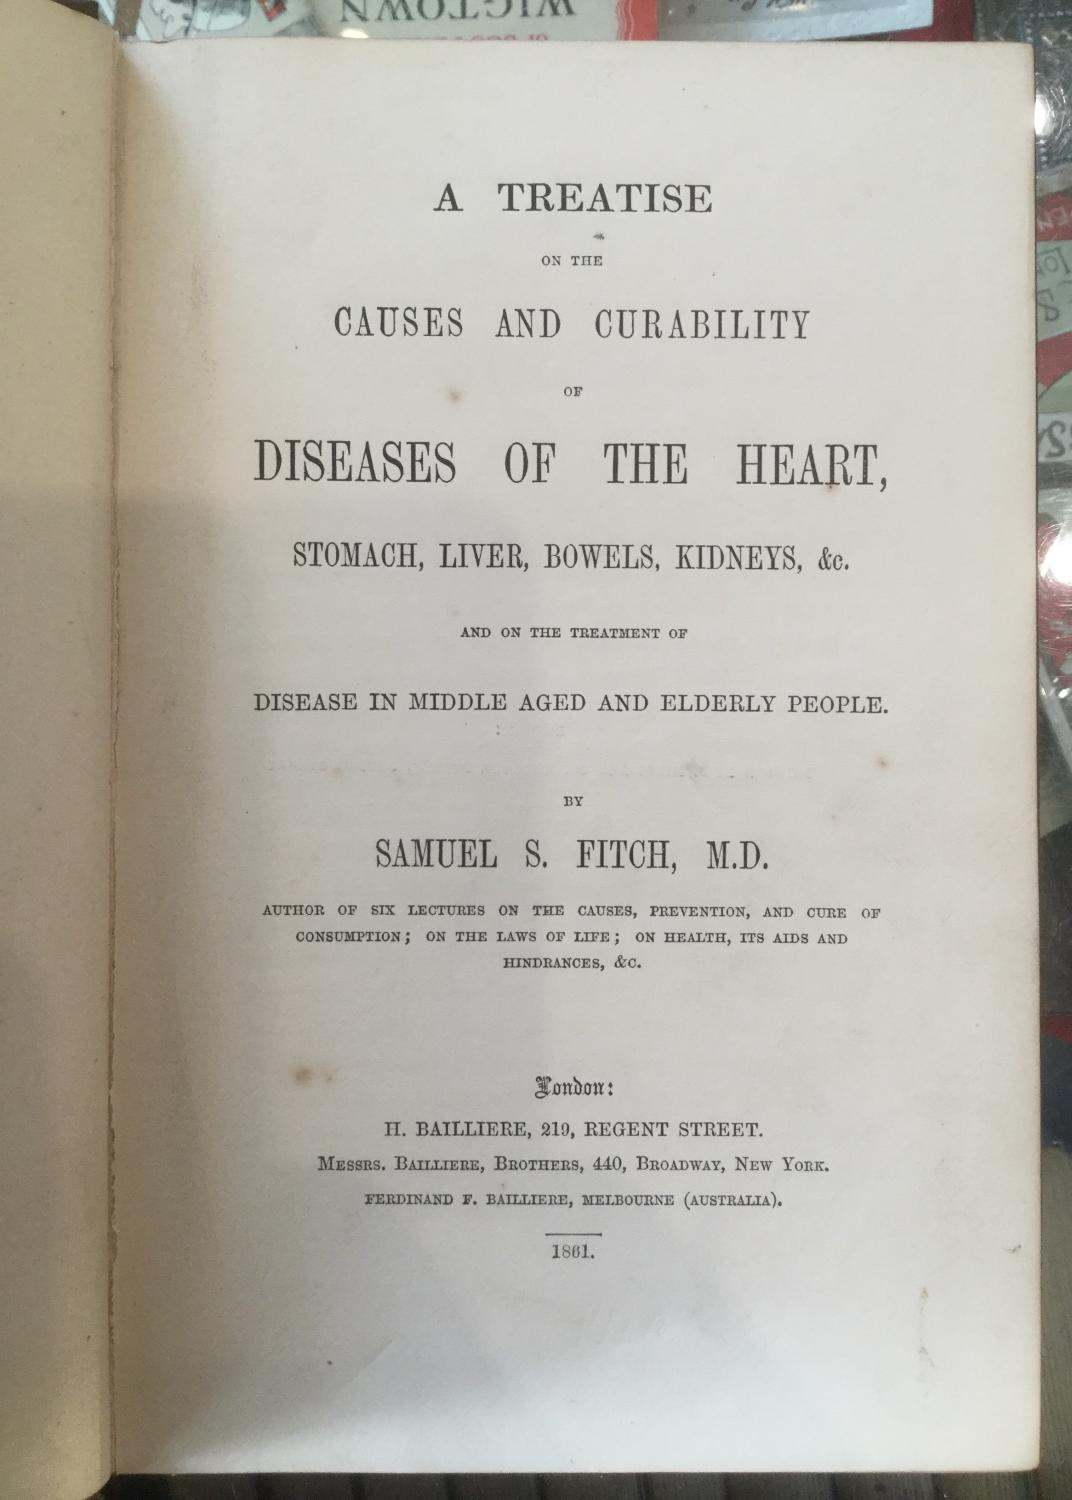 viaLibri ~ Rare Books from 1861 - Page 4